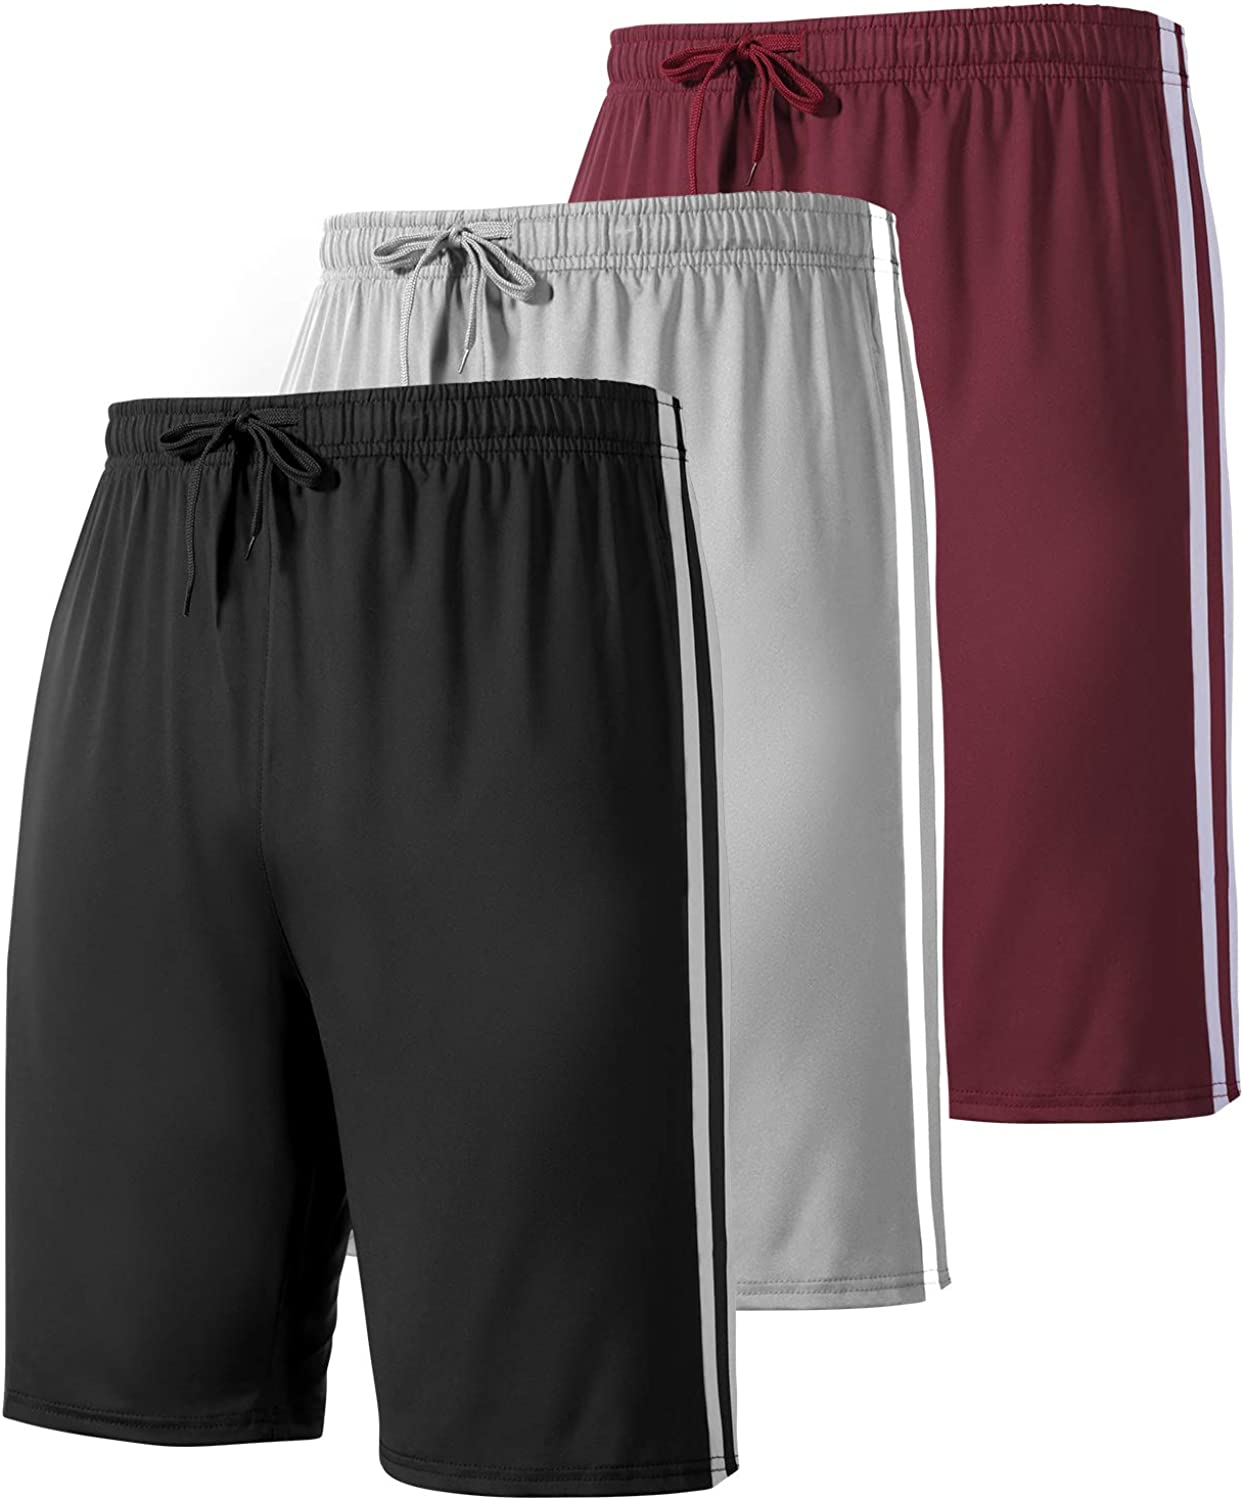 YOMOVER Athletic Shorts for Men - with Pockets 3 Pack Quick Dry Workout Gym Basketball Shorts